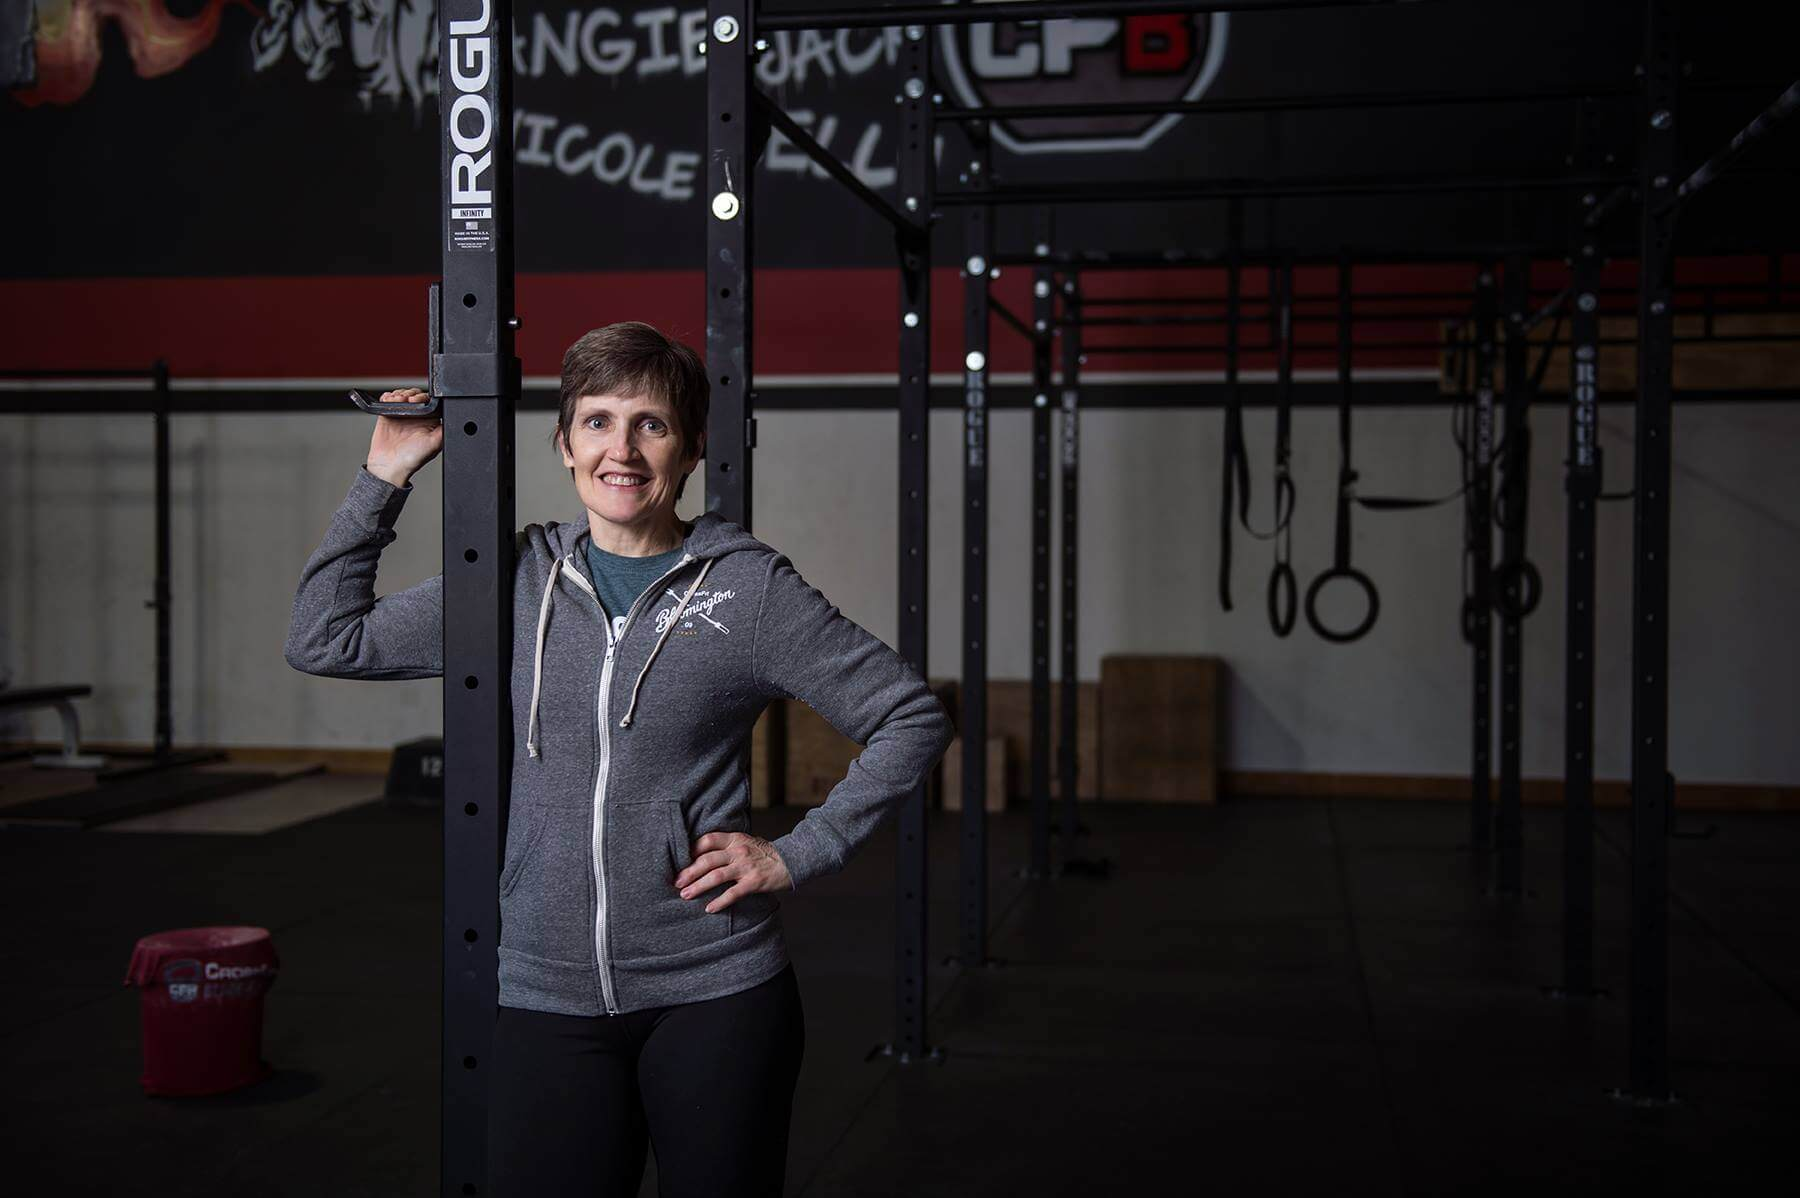 CrossFit Testimonial - Shelley Hahn